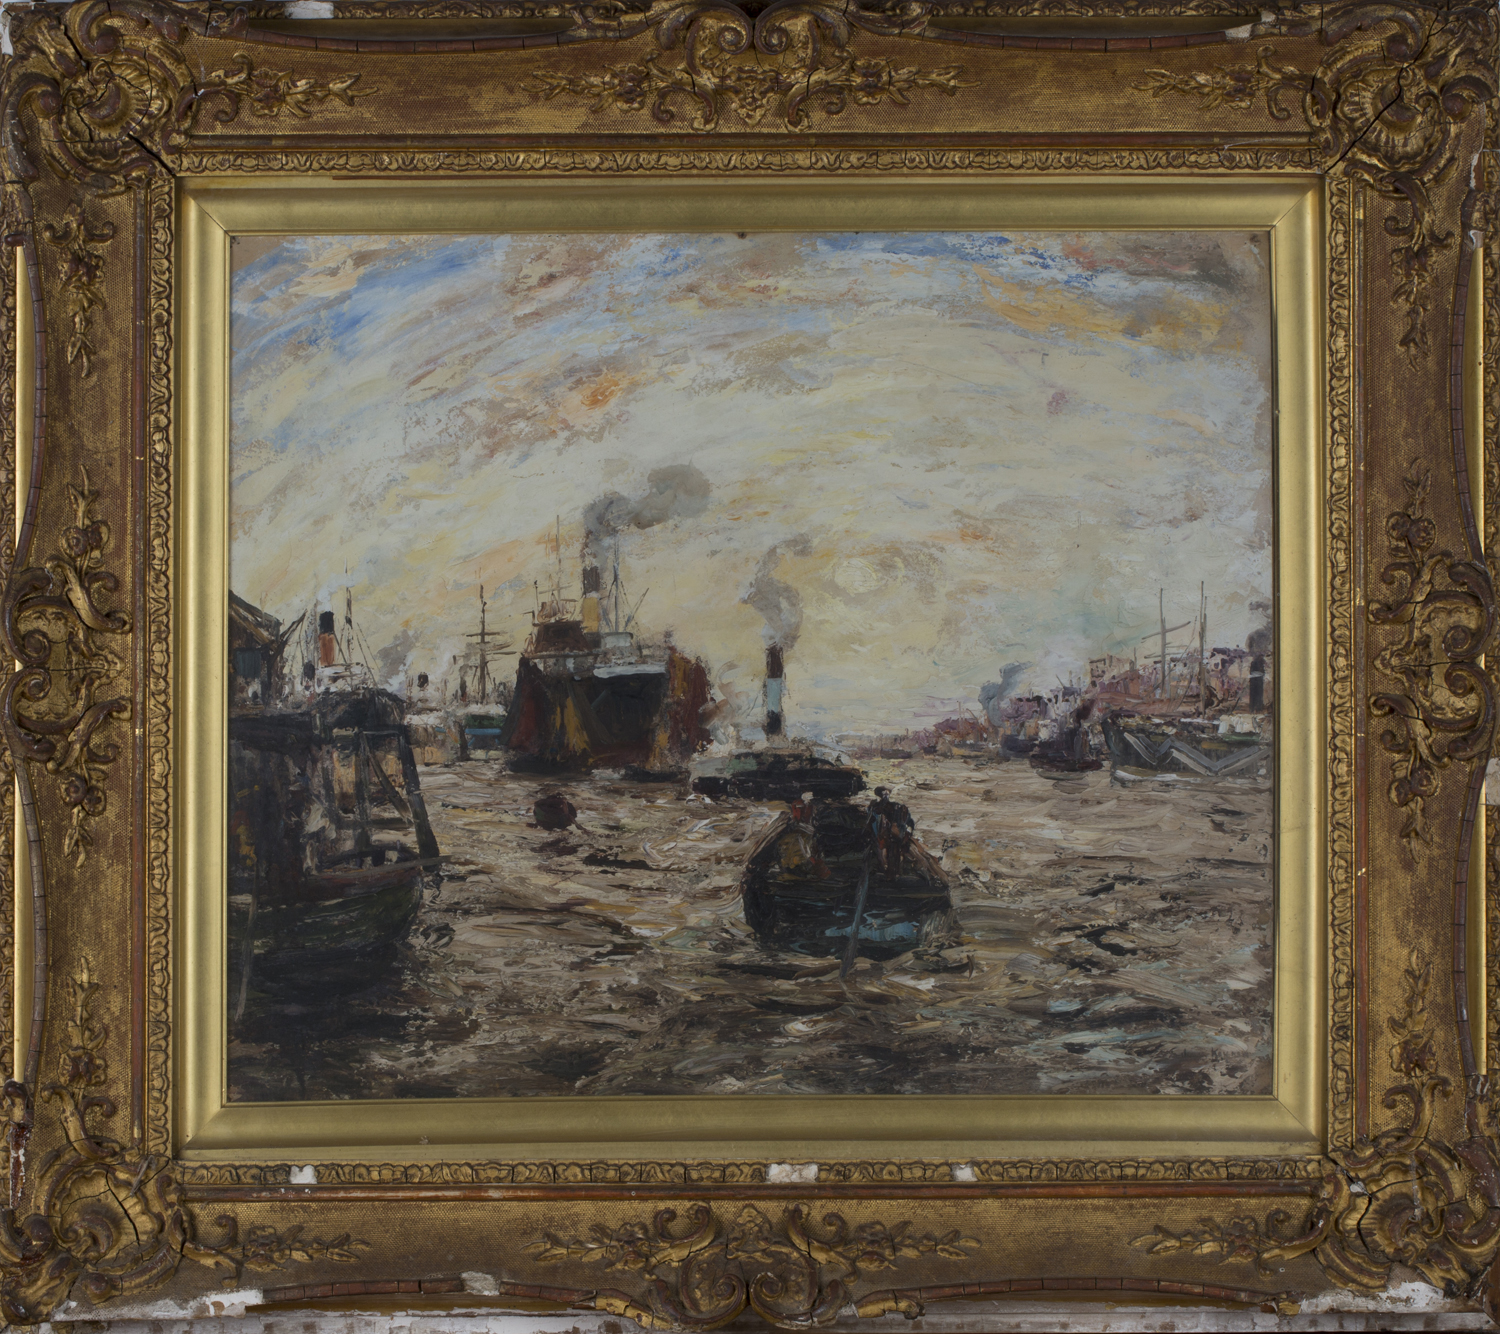 Lot 45 - James Kay - Maritime Scene with Vessels including a Dazzle Ship in a Harbour, probably the Clyde,